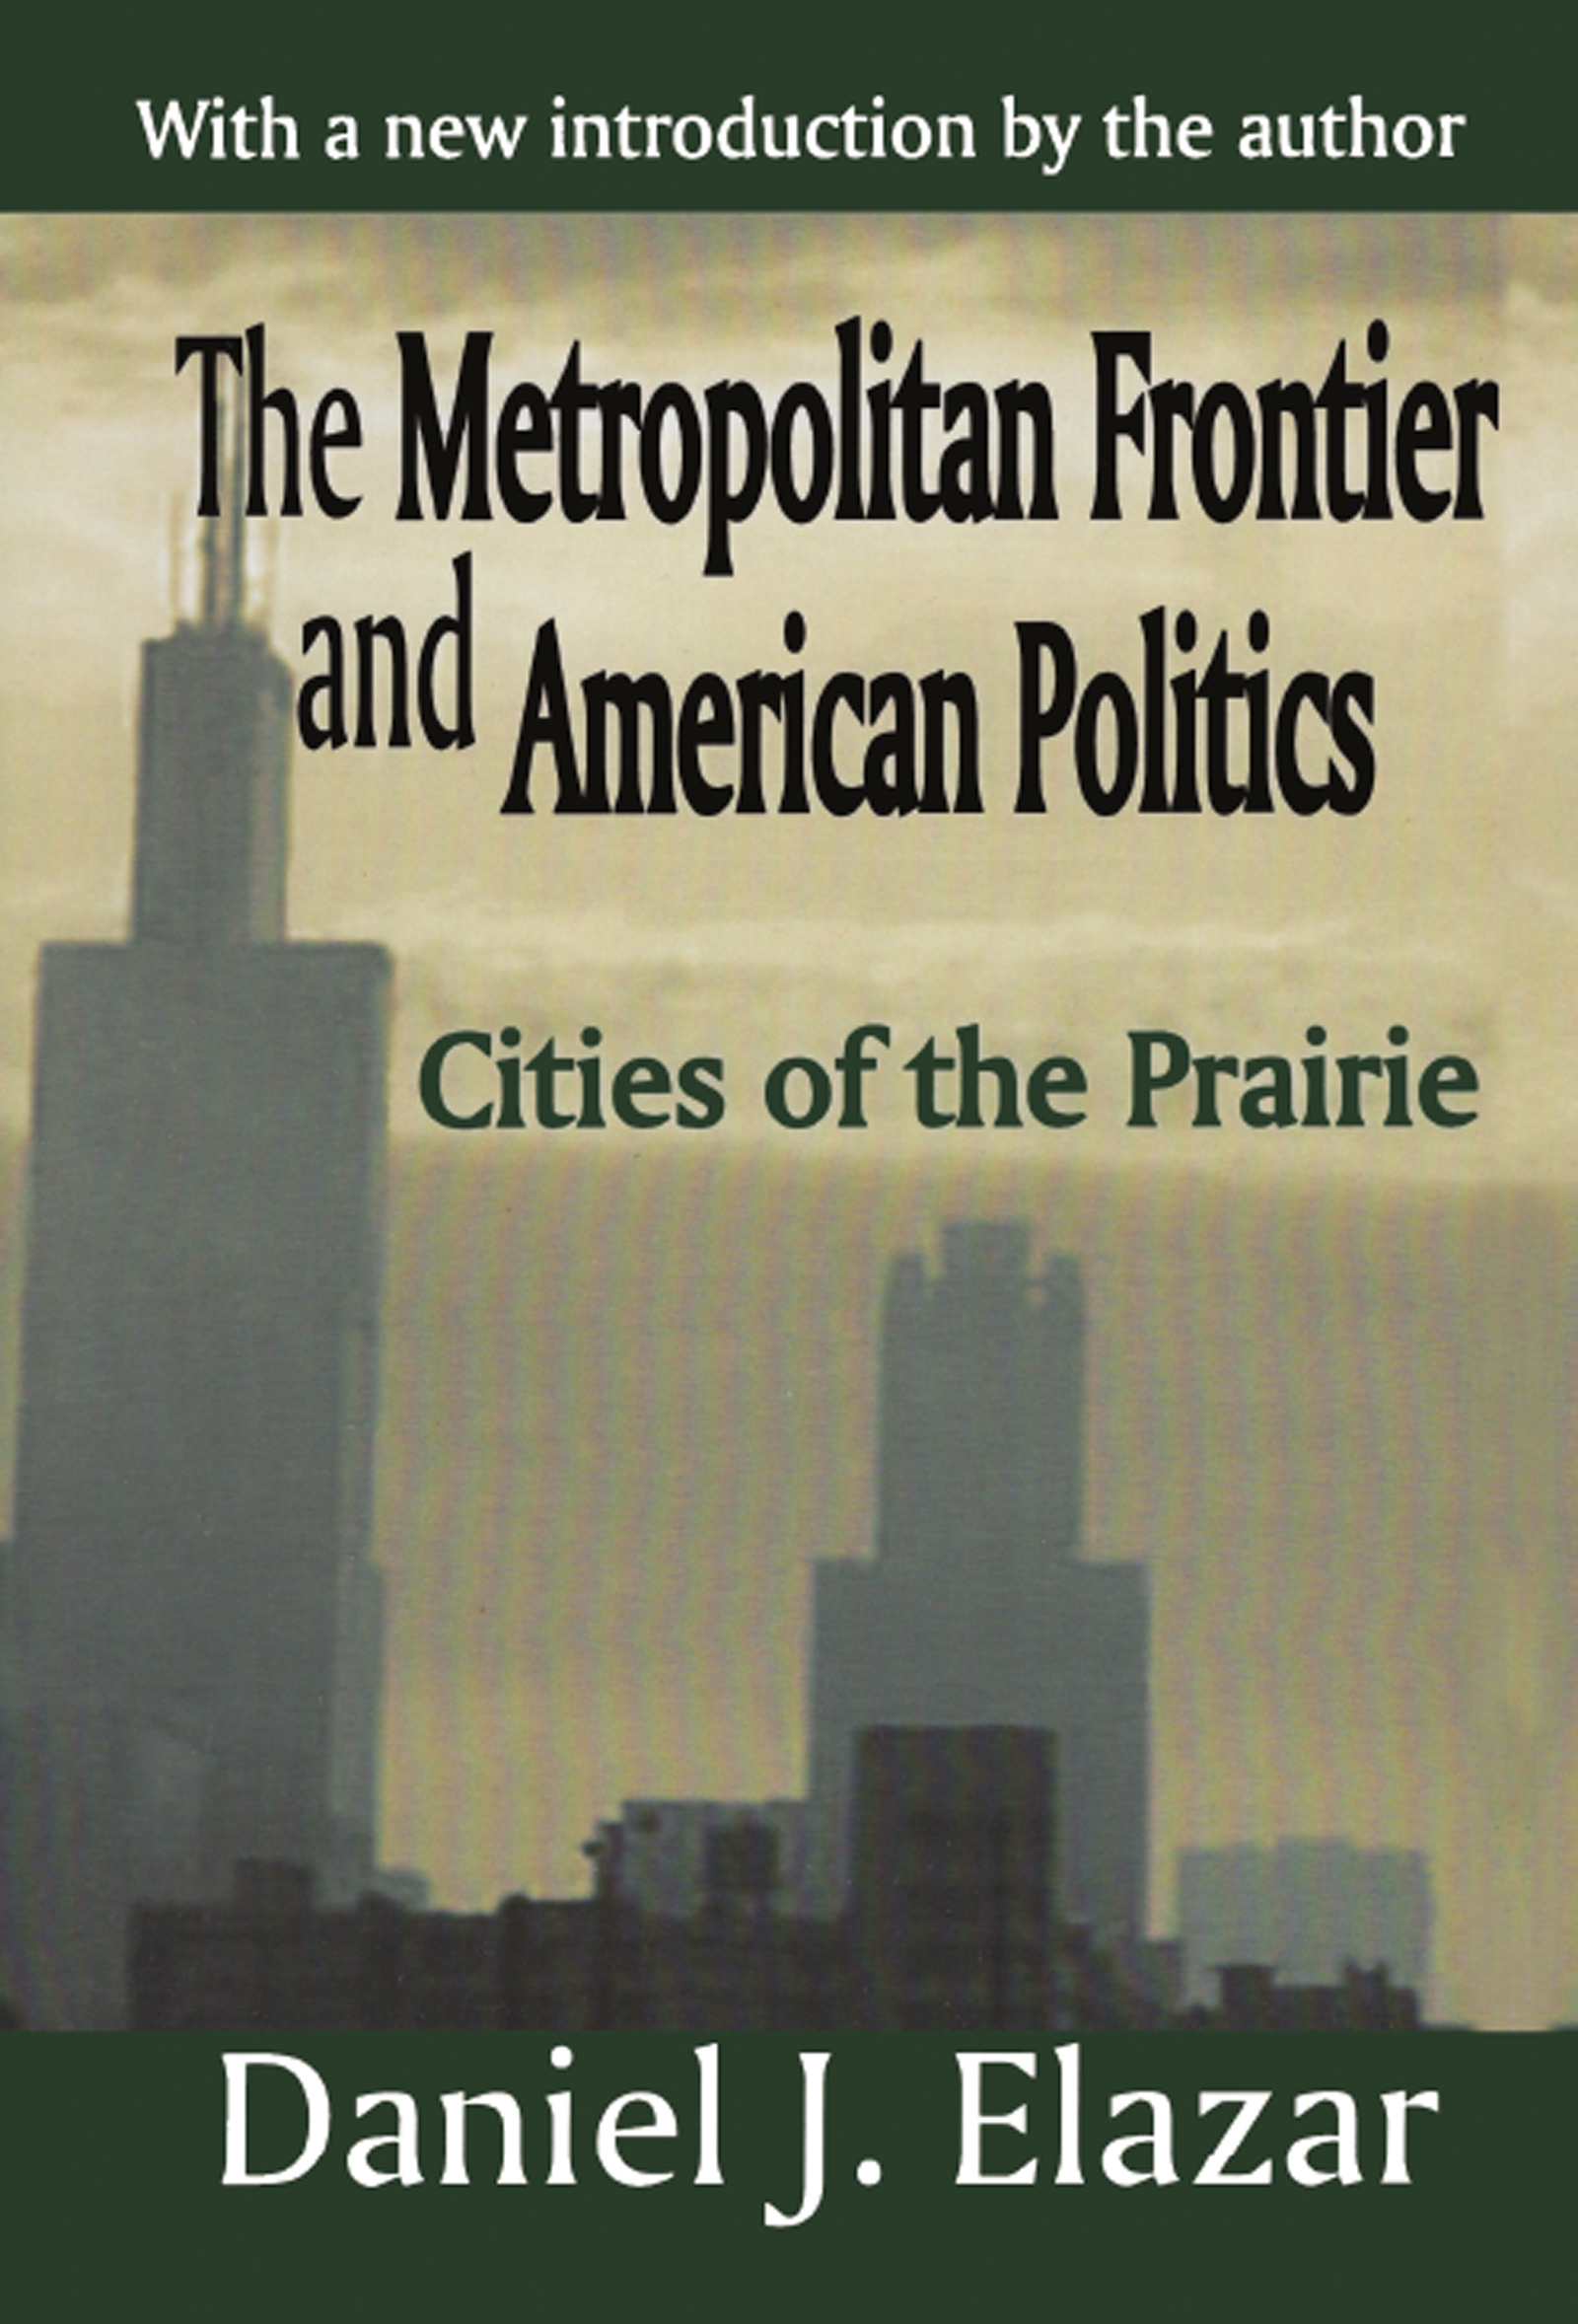 The Metropolitan Frontier and American Politics